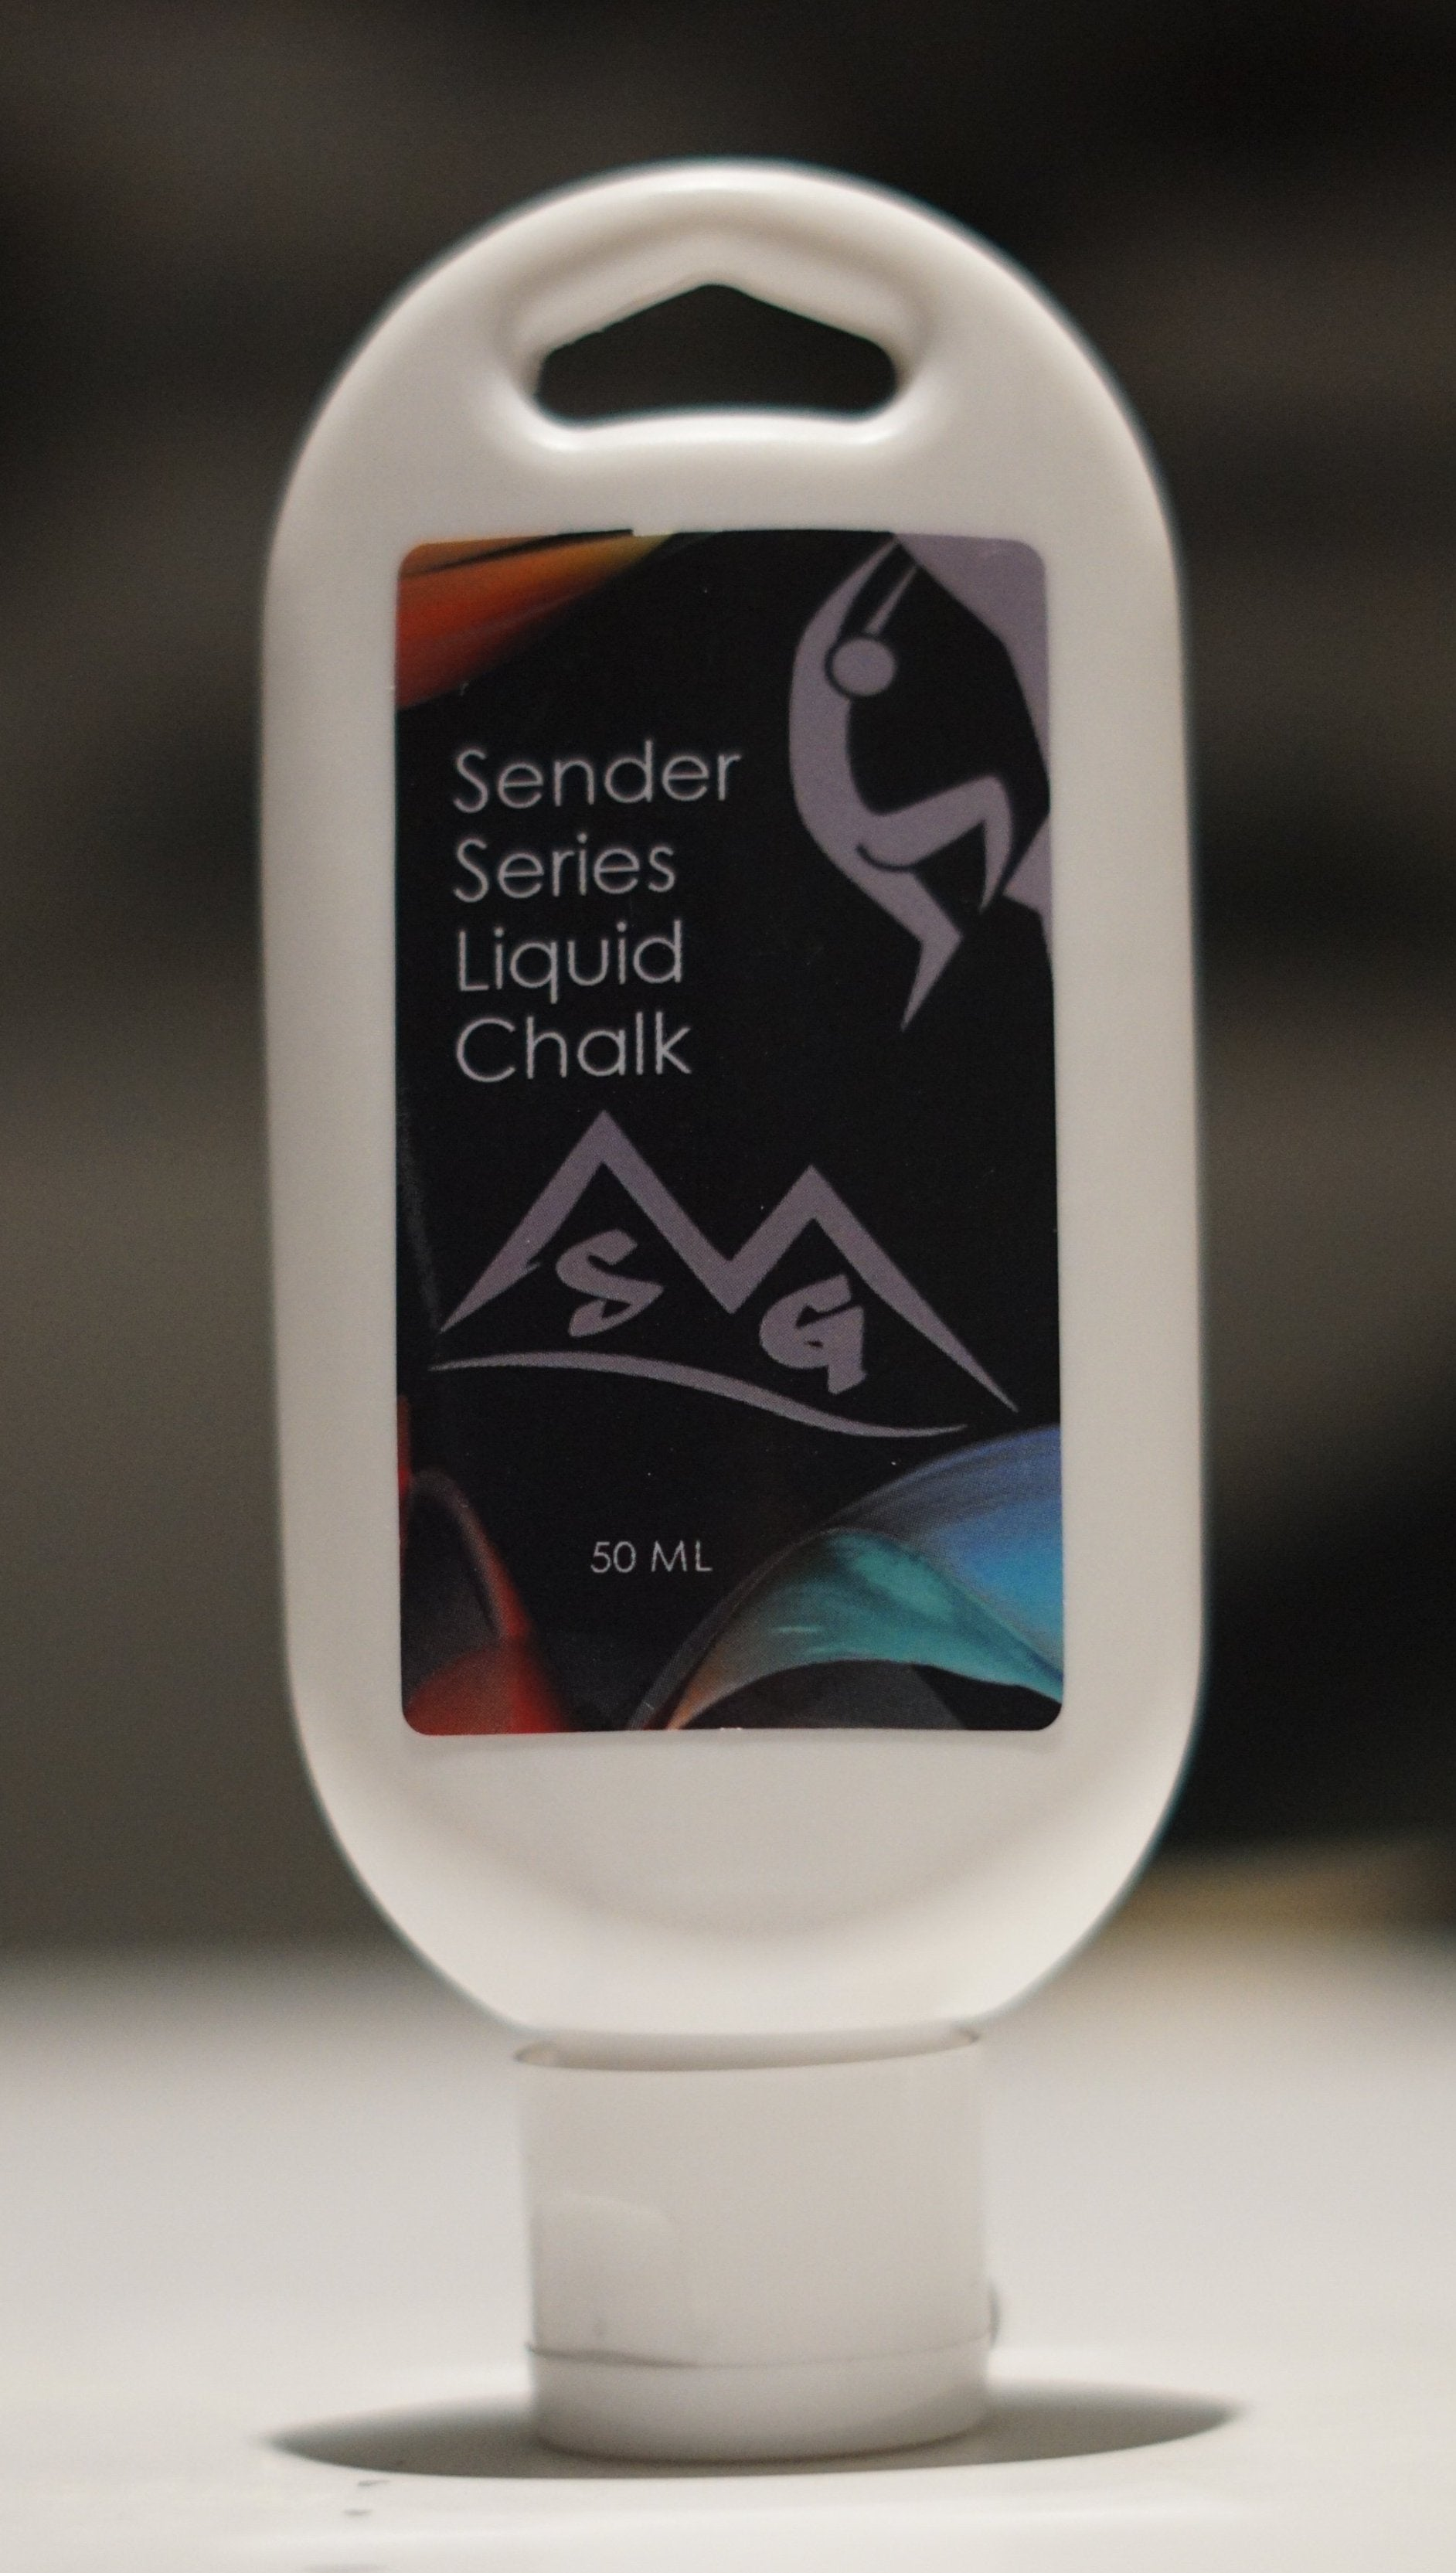 Sender Series Liquid Chalk